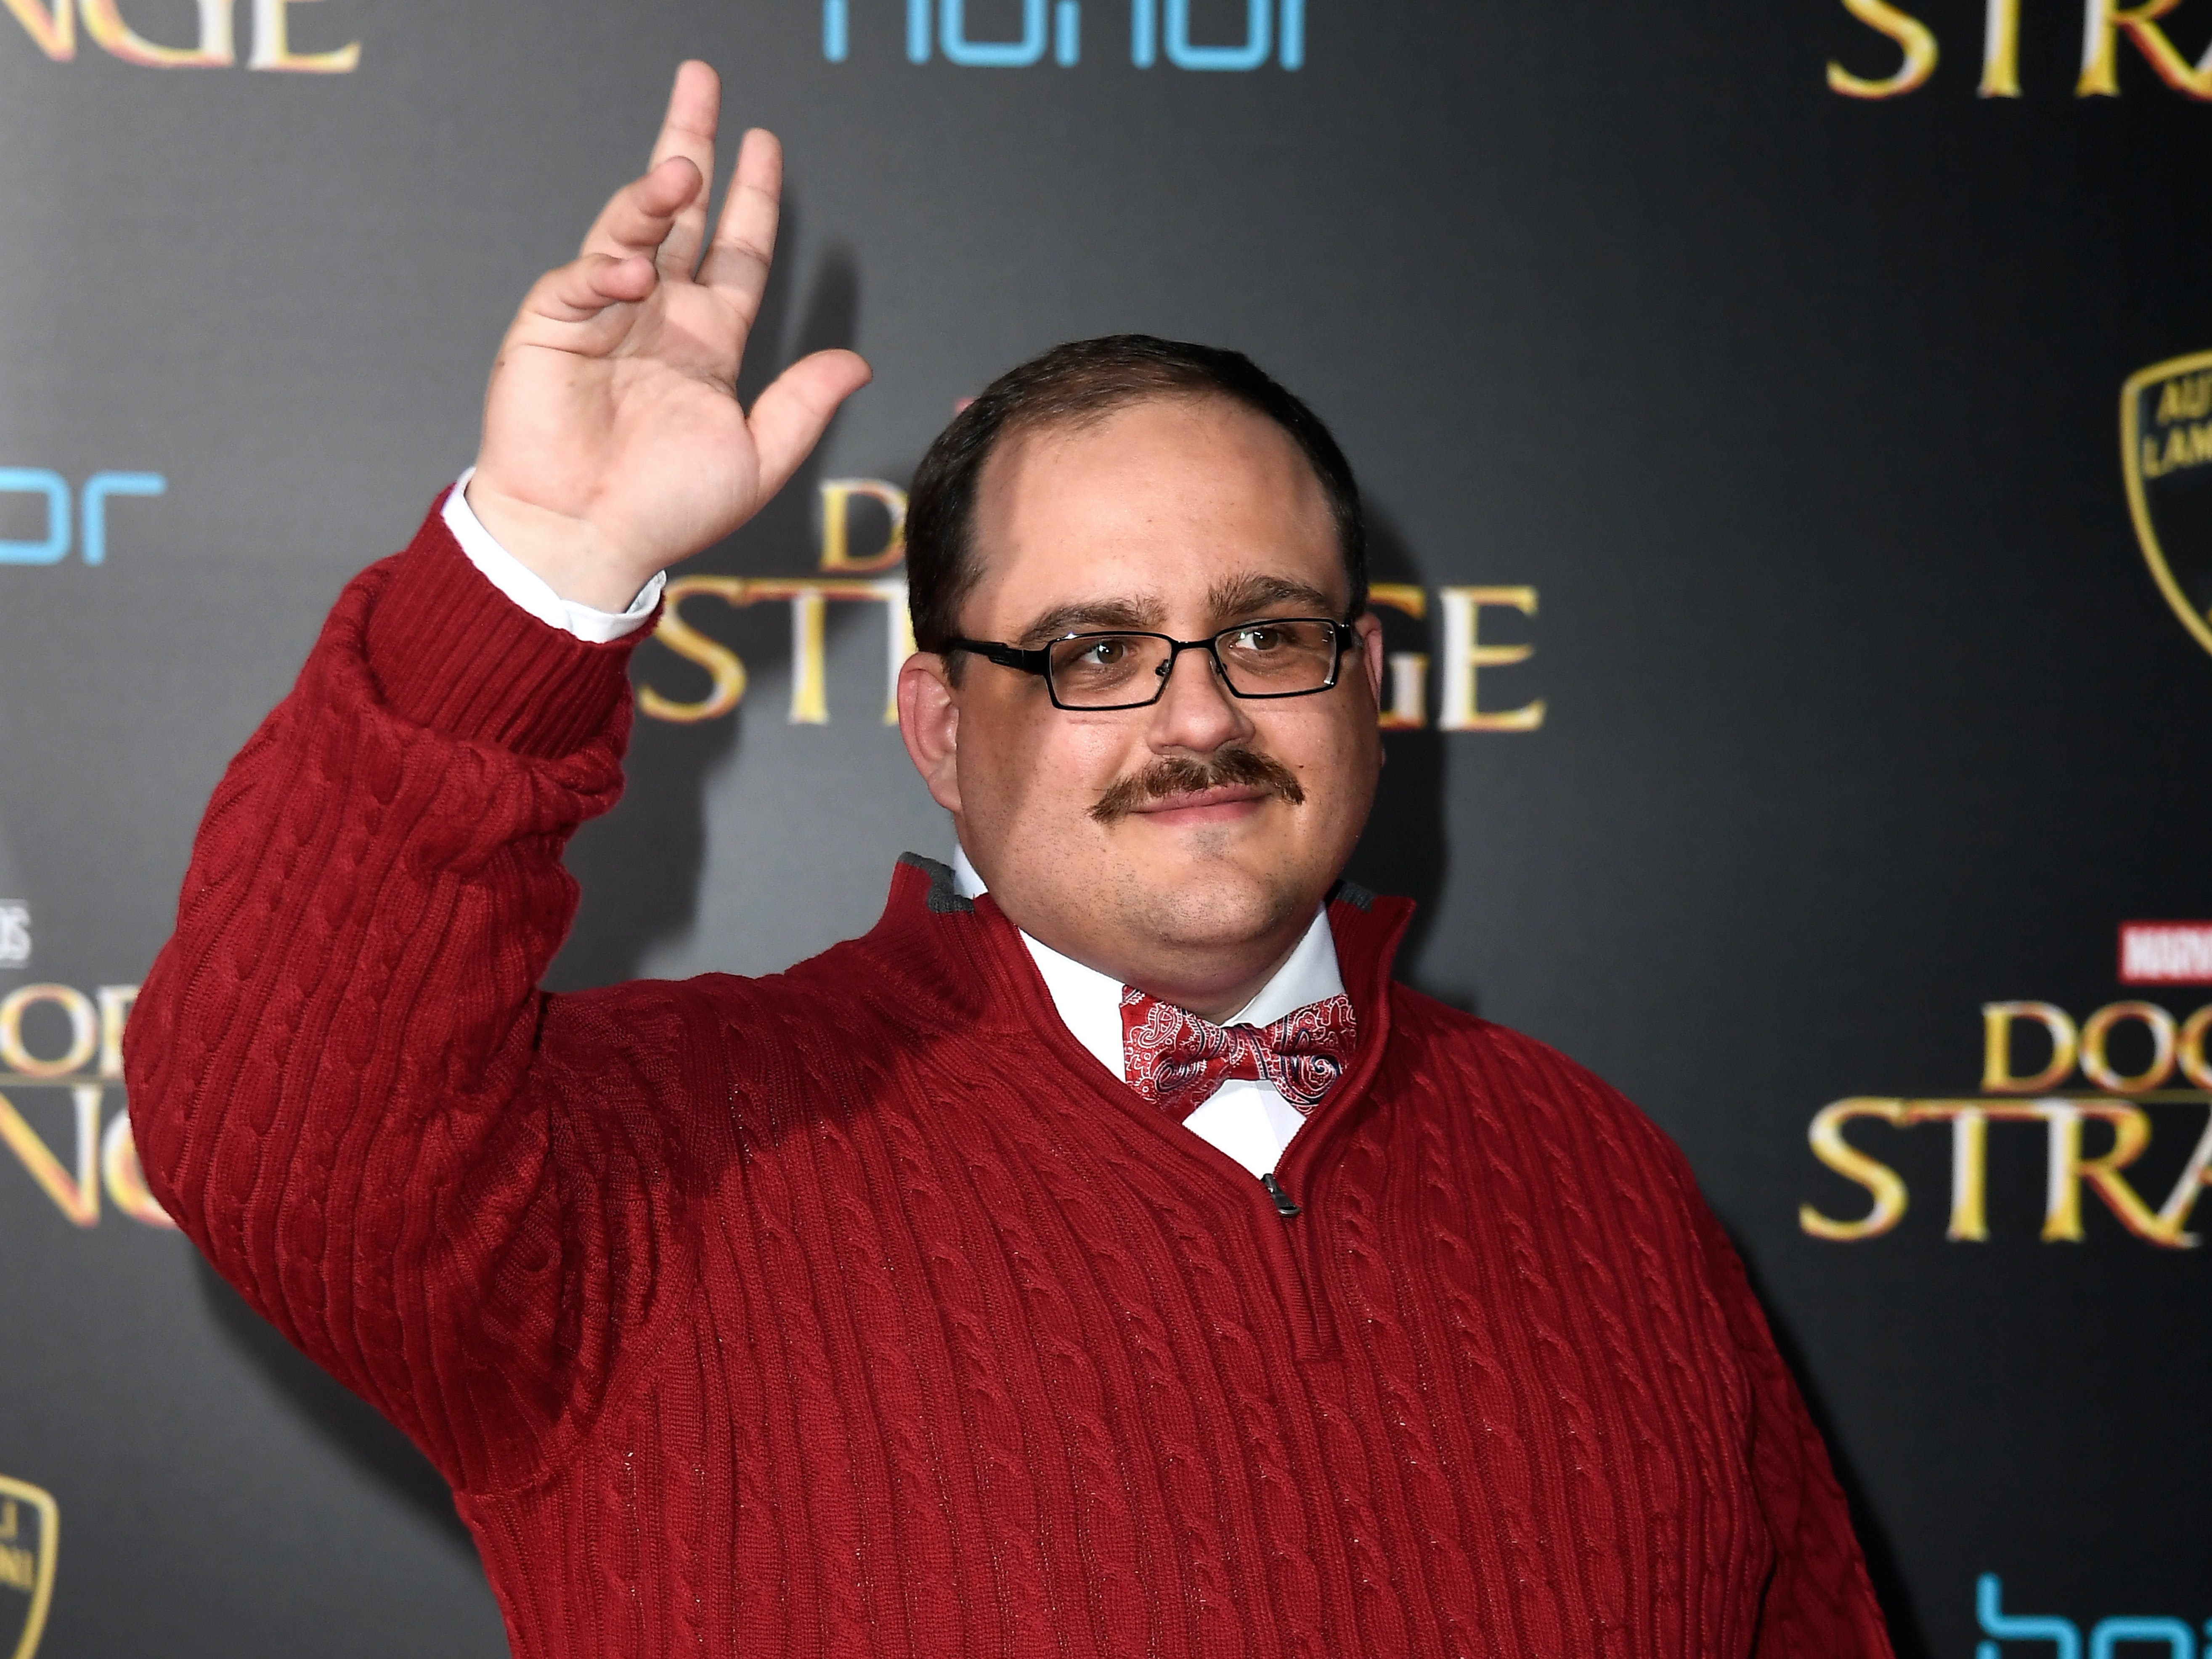 HOLLYWOOD, CA - OCTOBER 20:  Ken Bone attends the premiere of Disney and Marvel Studios' 'Doctor Strange' at the El Capitan Theatre on October 20, 2016 in Hollywood, California.  (Photo by Frazer Harrison/Getty Images)